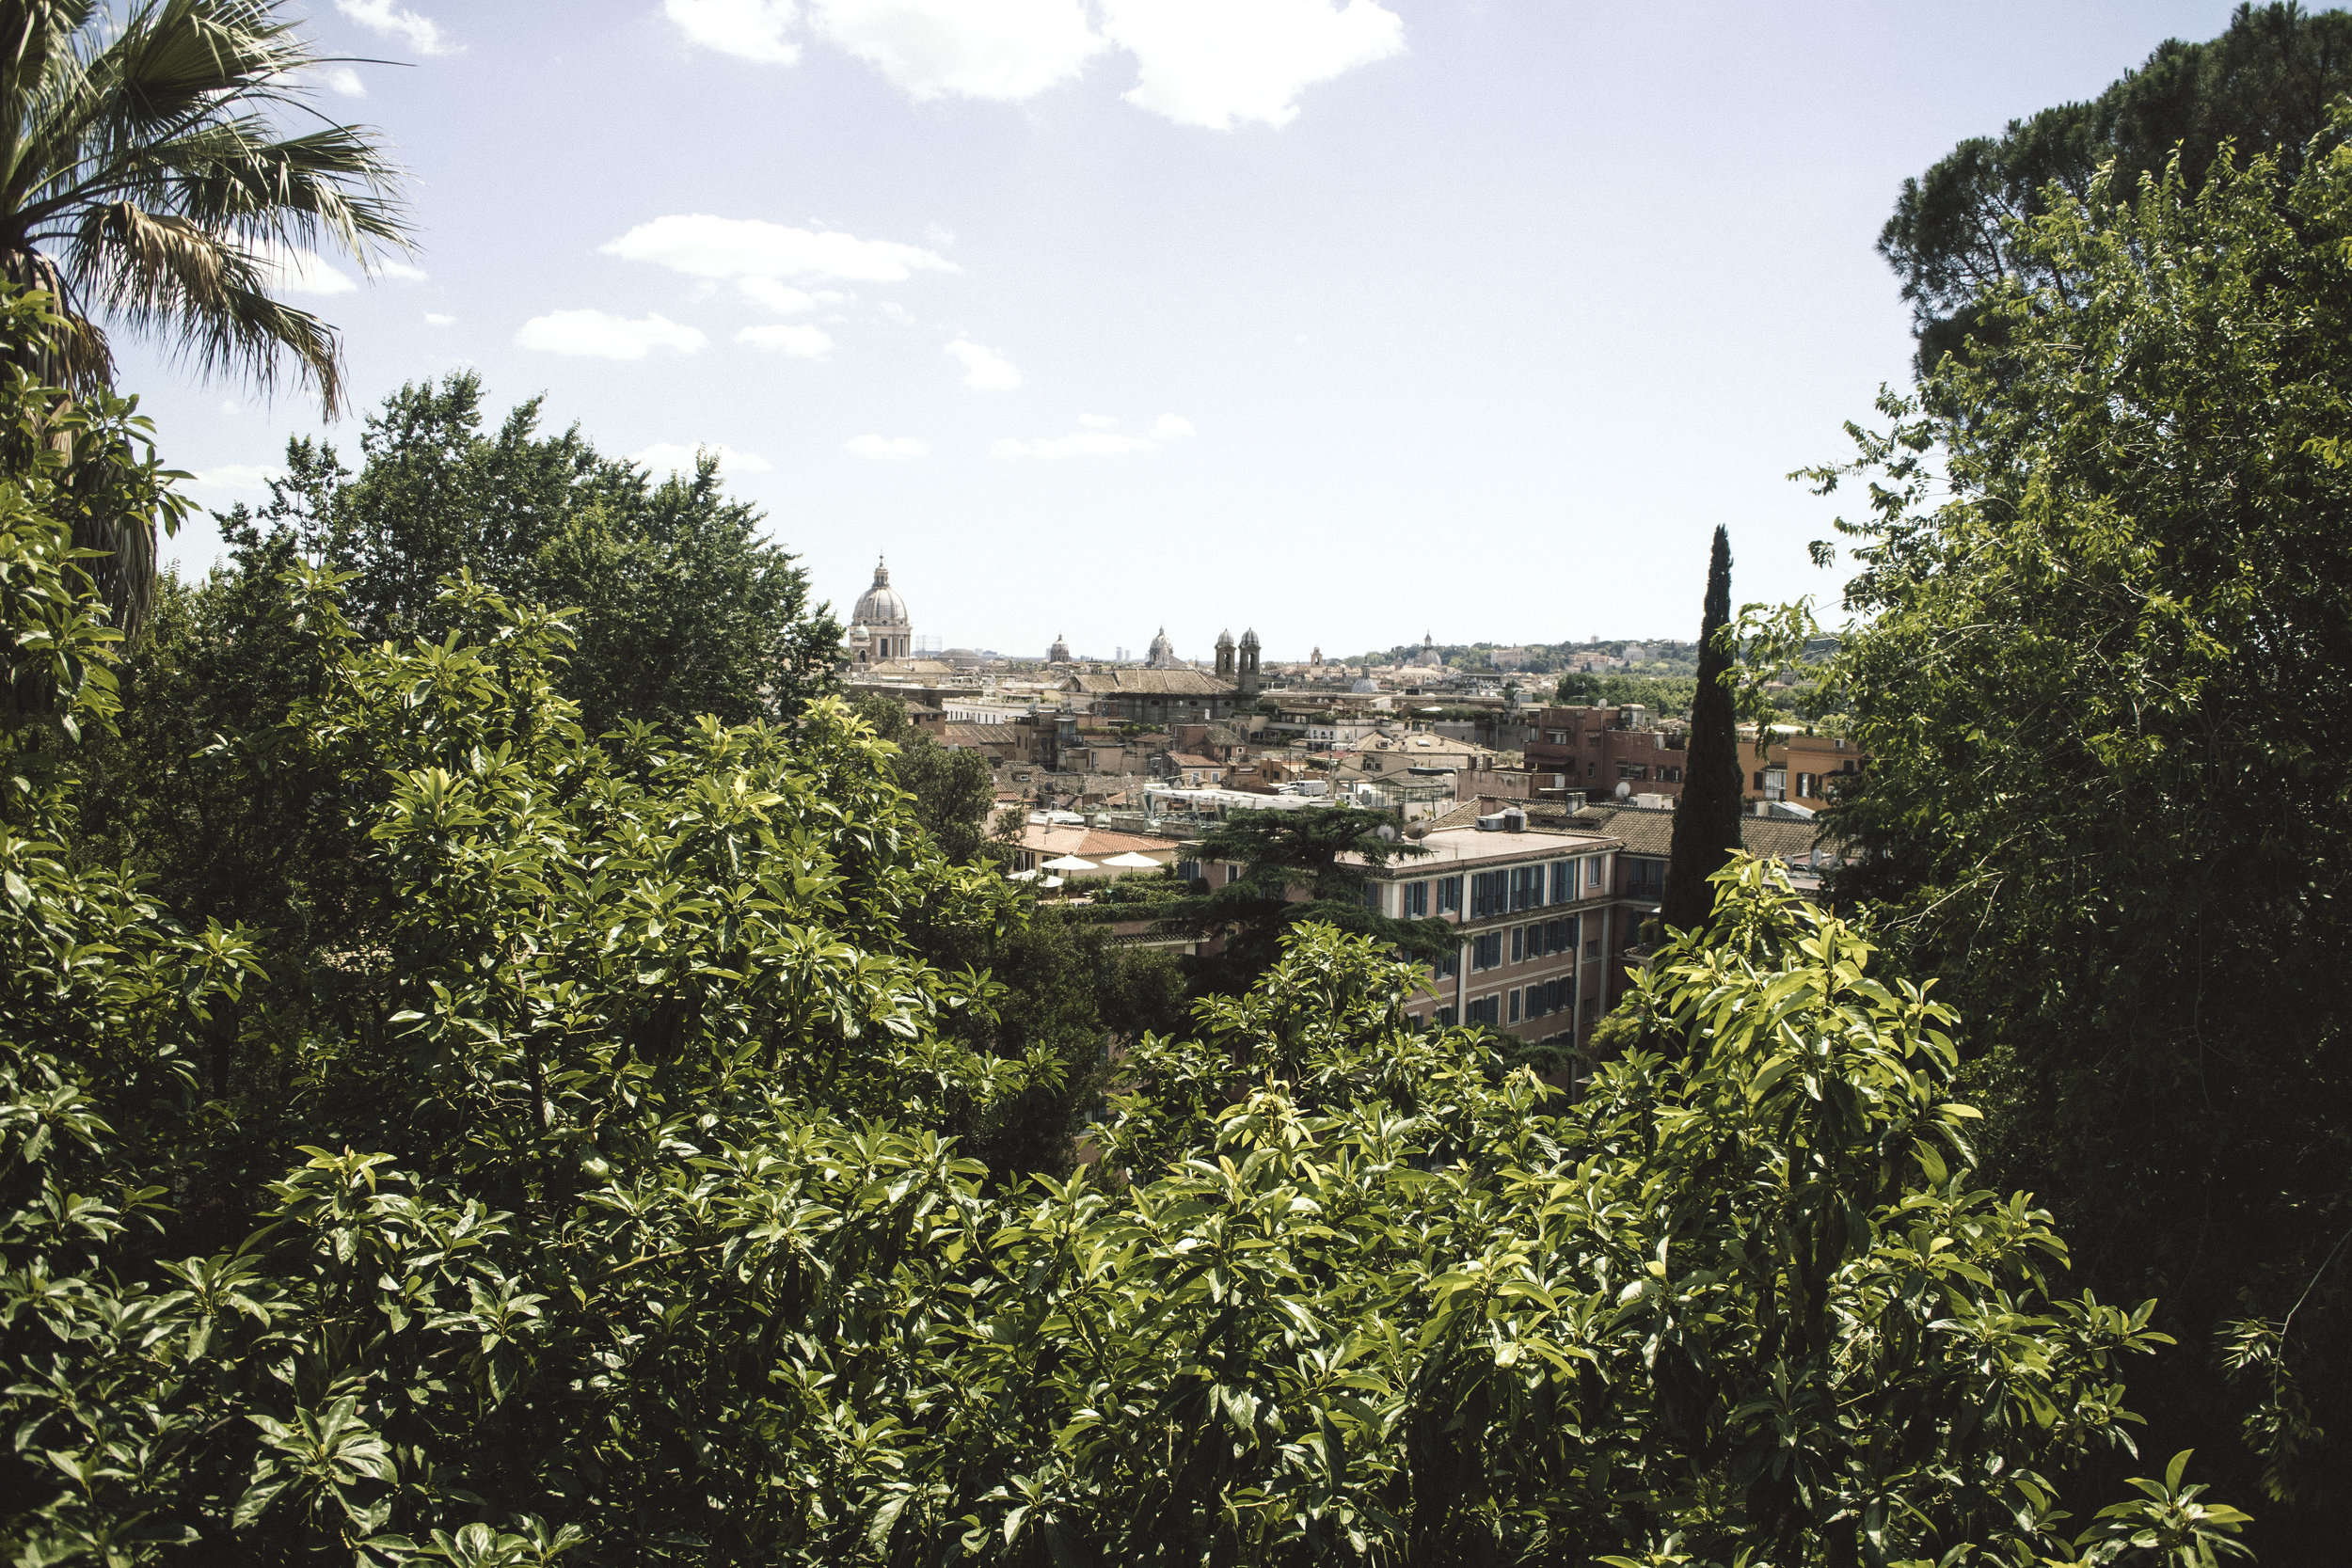 A scenic view of Rome from Terrazza del Pincio